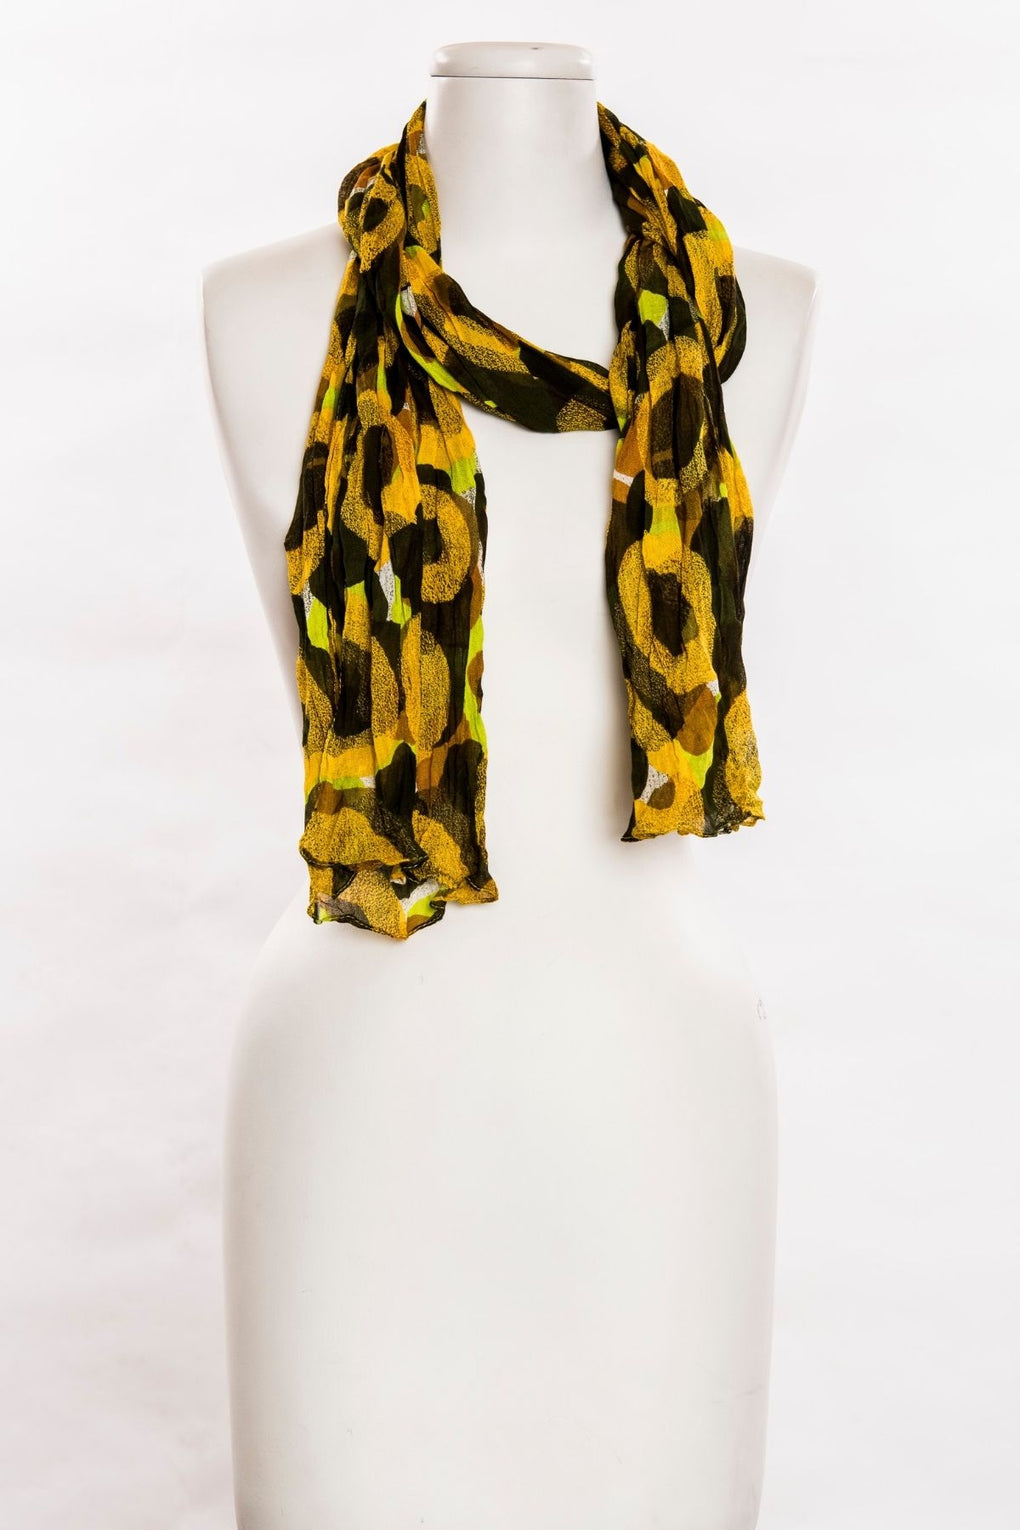 Interlaced Circles Print Scarf (SE-680)